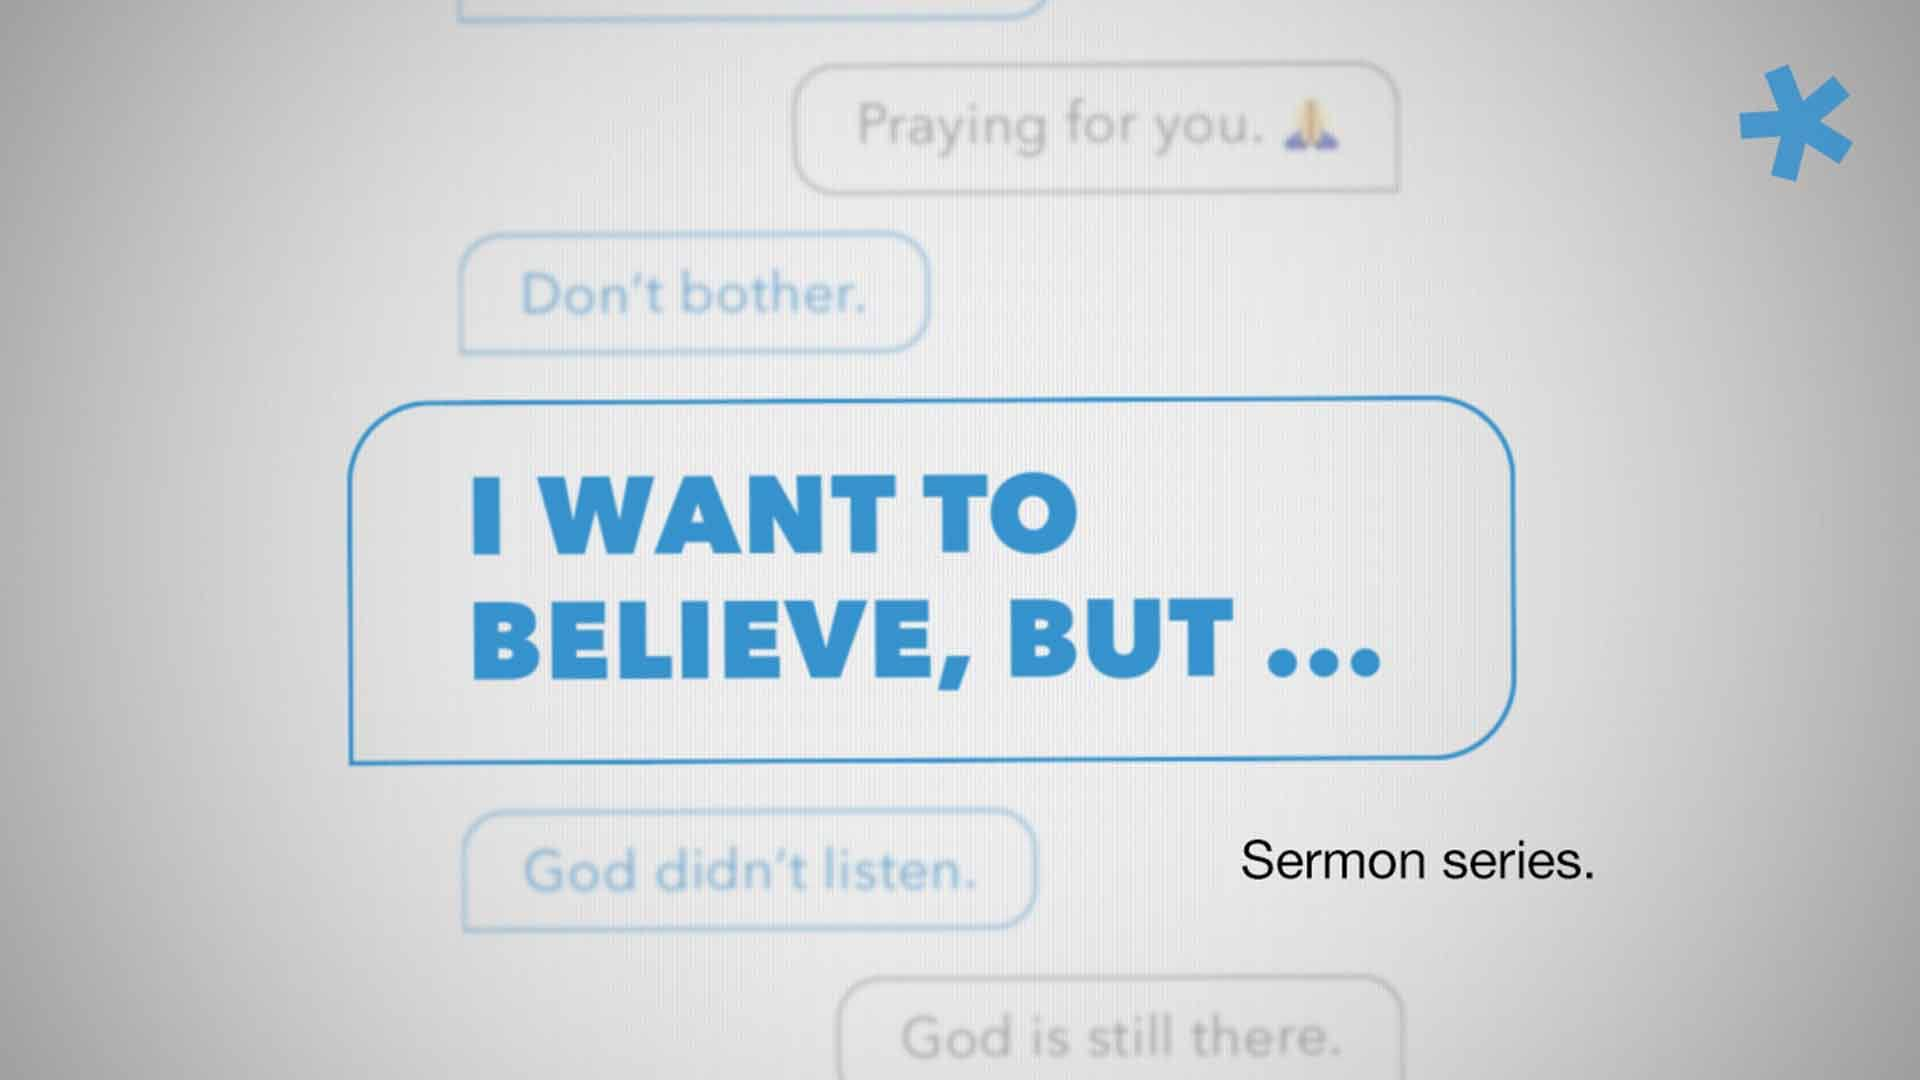 I Want to Believe But... Sermon Series